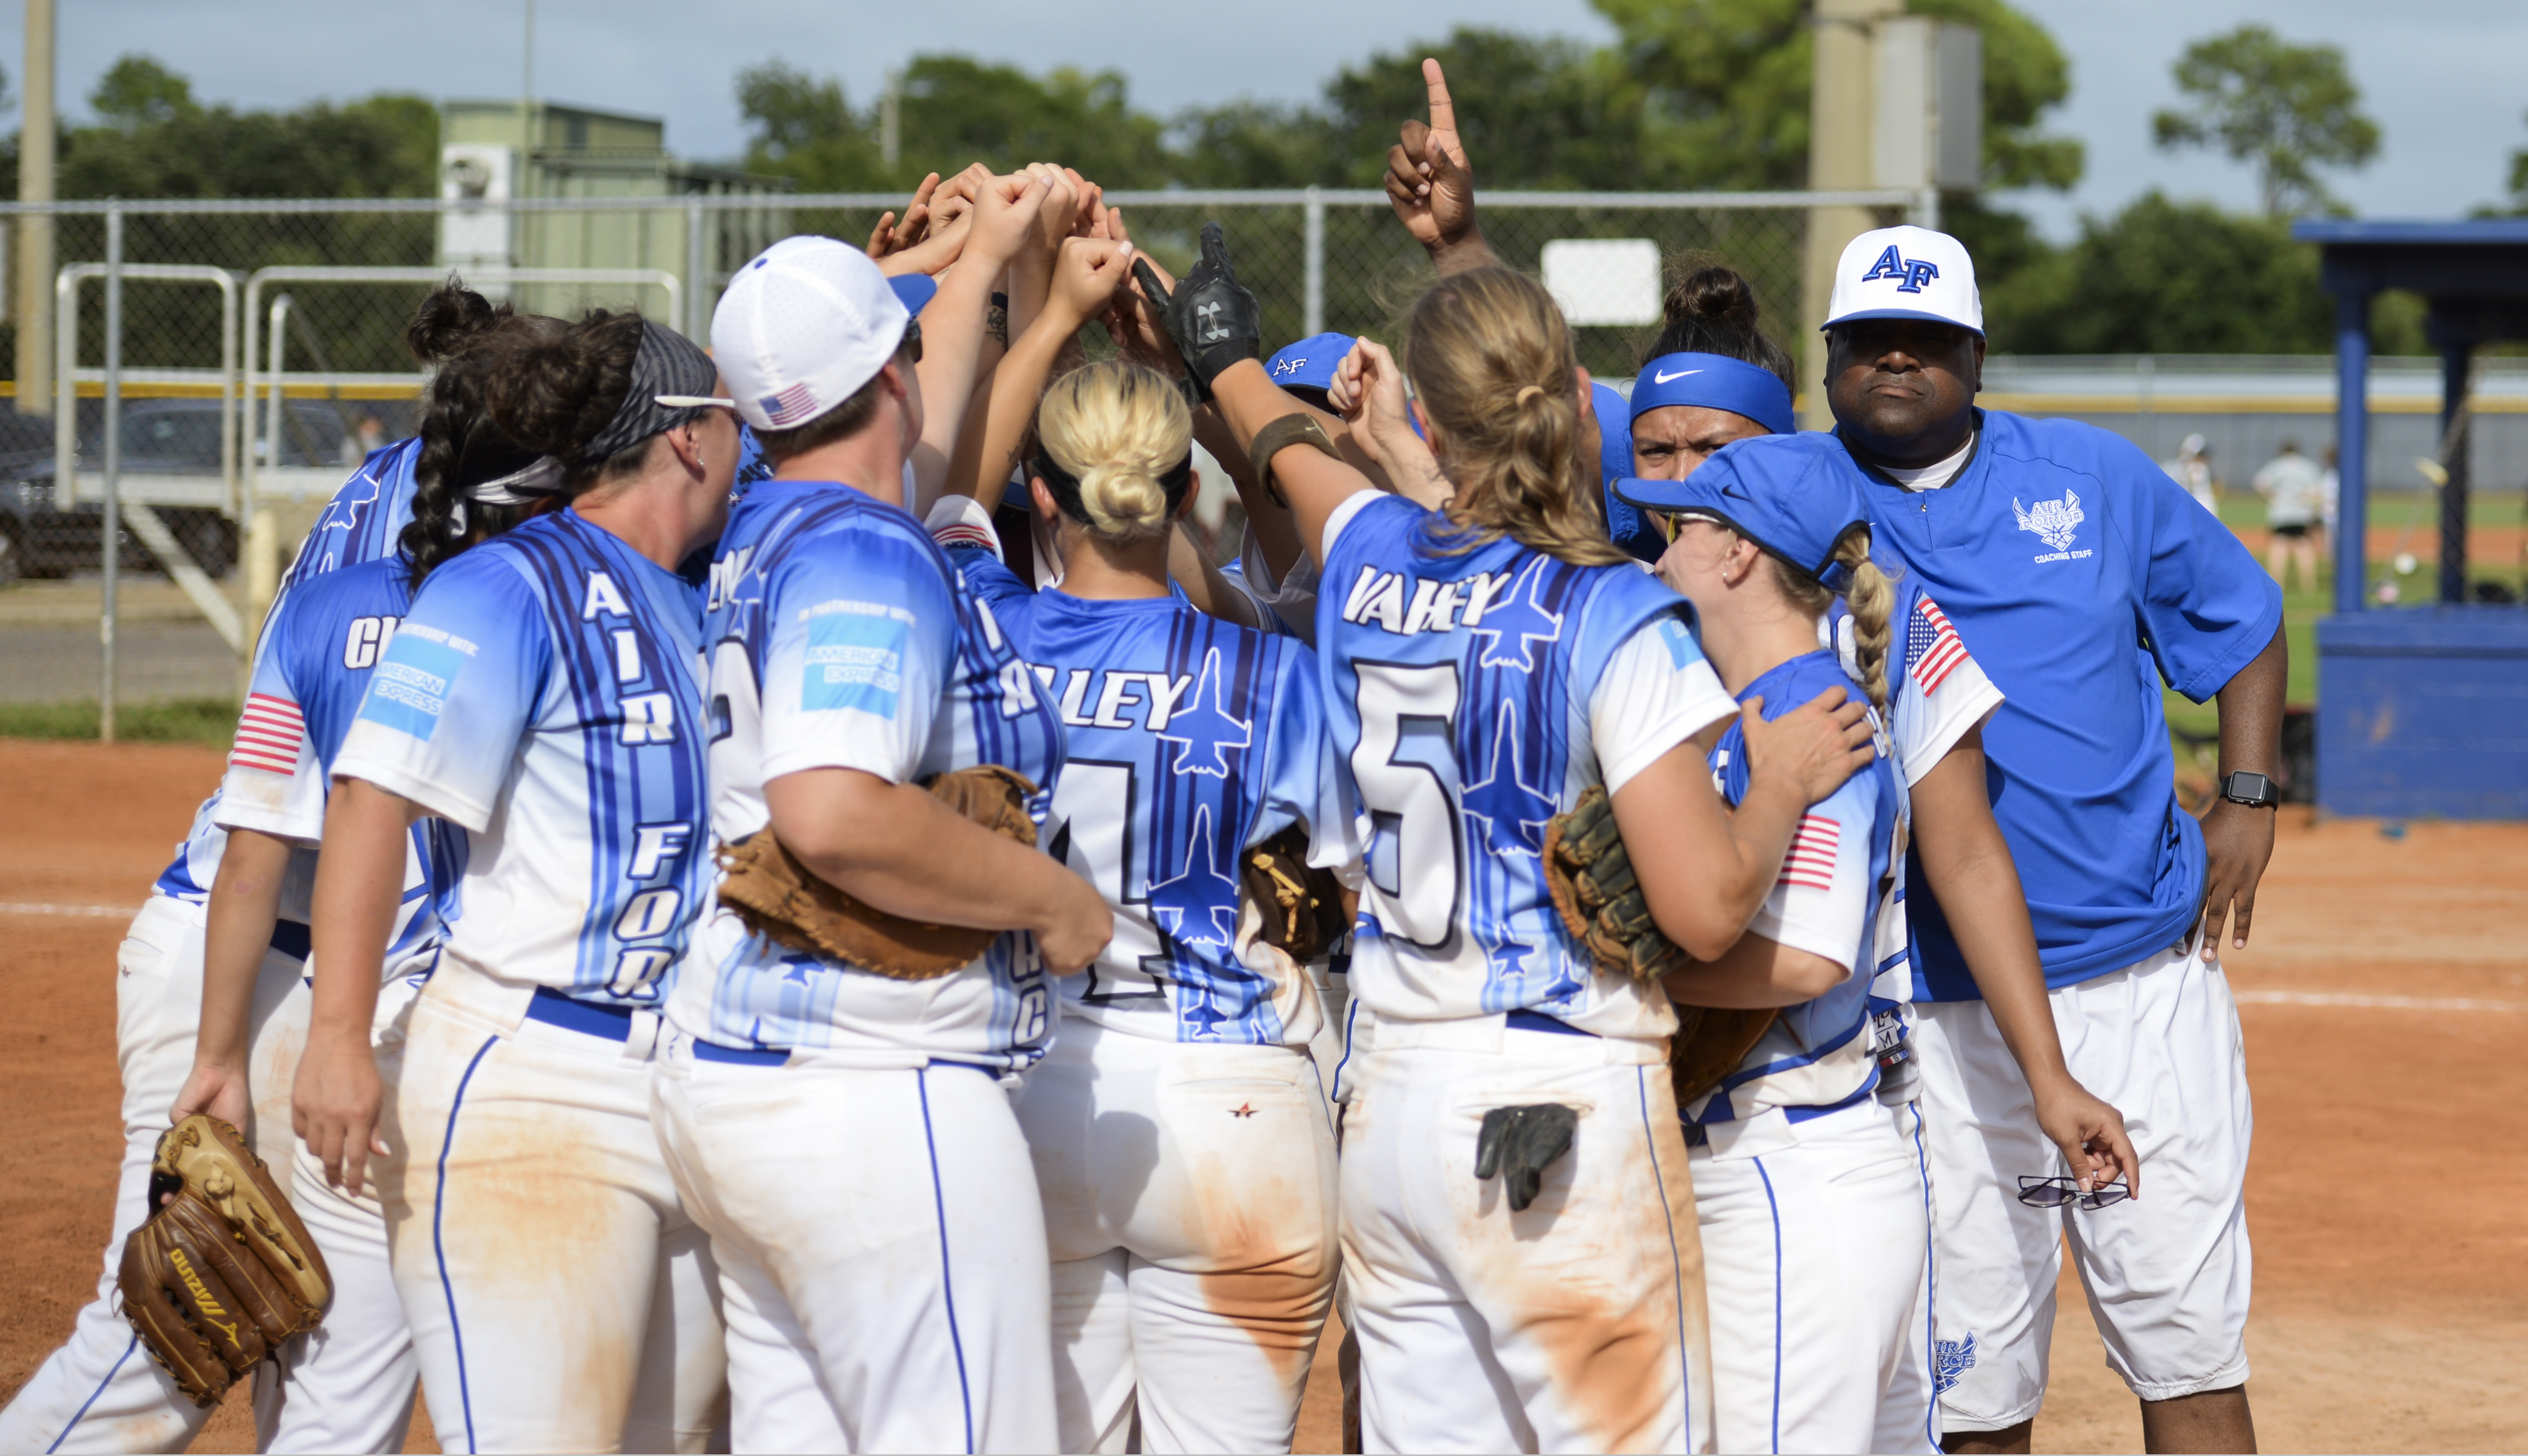 The All Air Force team huddles for a team-high five after winning gold for the second year running during the 2018 Women's Armed Forces Softball Championship, Aug. 15-17. Teams from the Navy, Army and Marine Corps look to dethrone the defending champion Air Force team. (U.S. Navy photo by Mass Communication Specialist 2nd Class Timothy A. Hazel/Released)